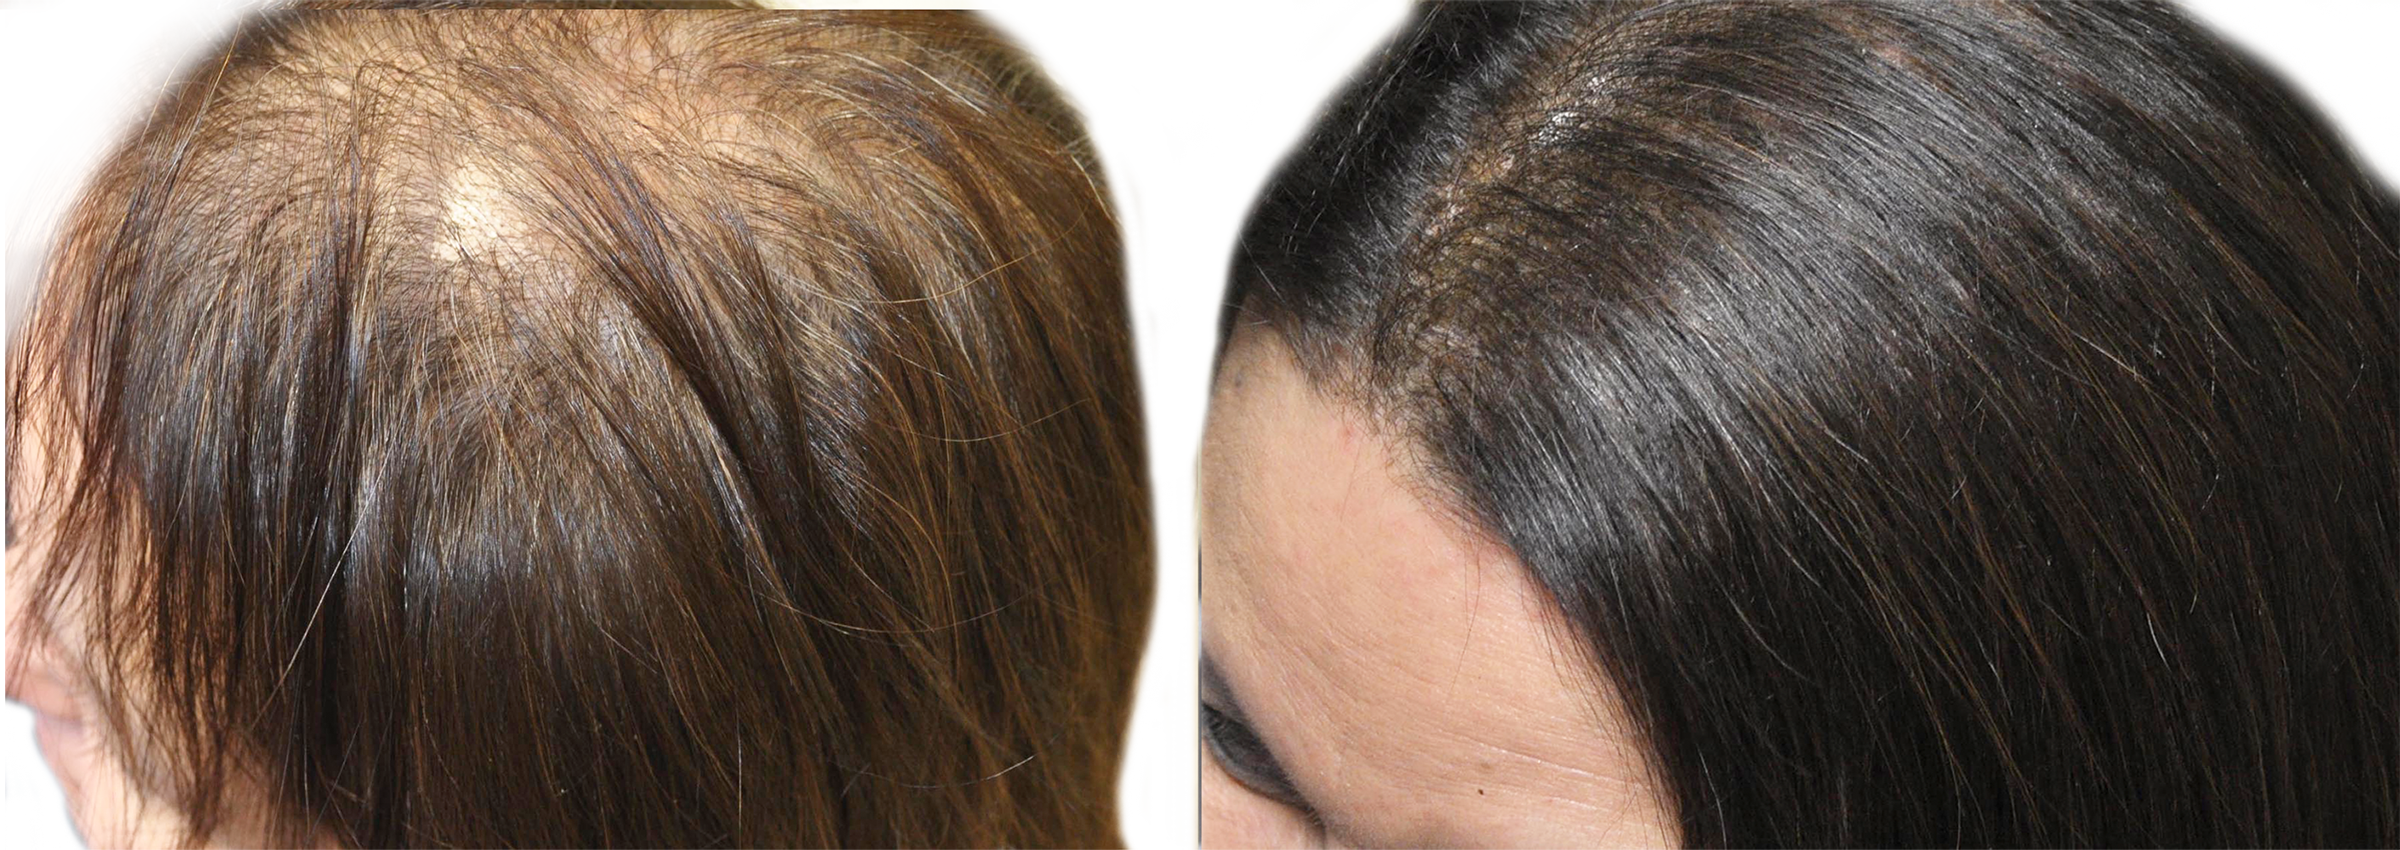 Long Island hair rejuvenation before and after